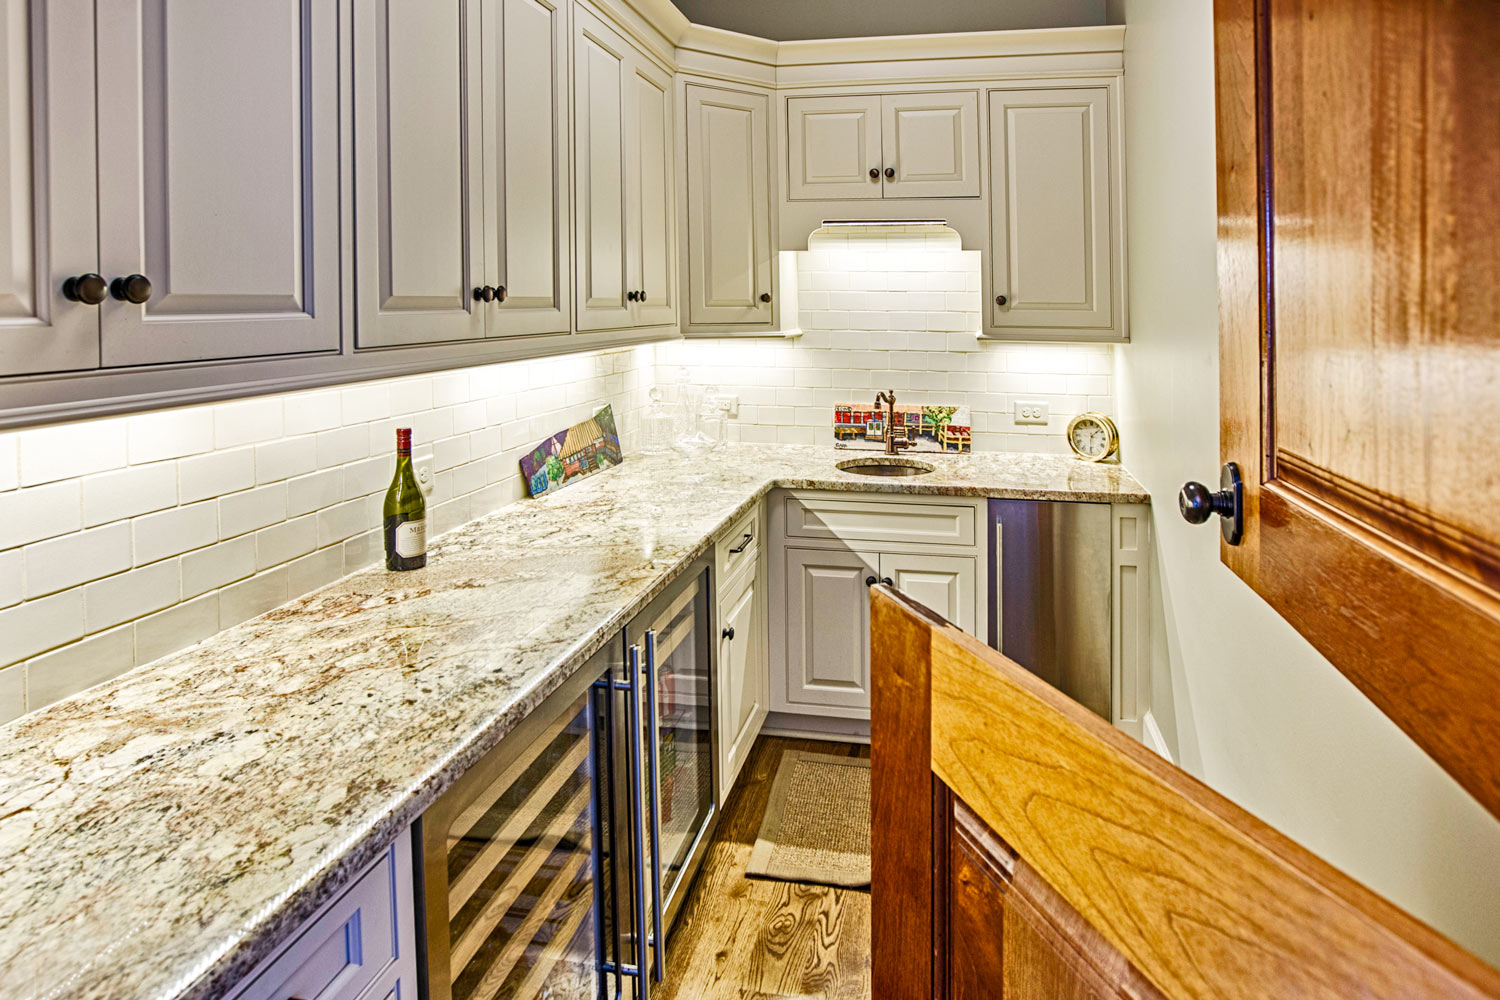 A pantry space designed for bartending during functions and entertaining